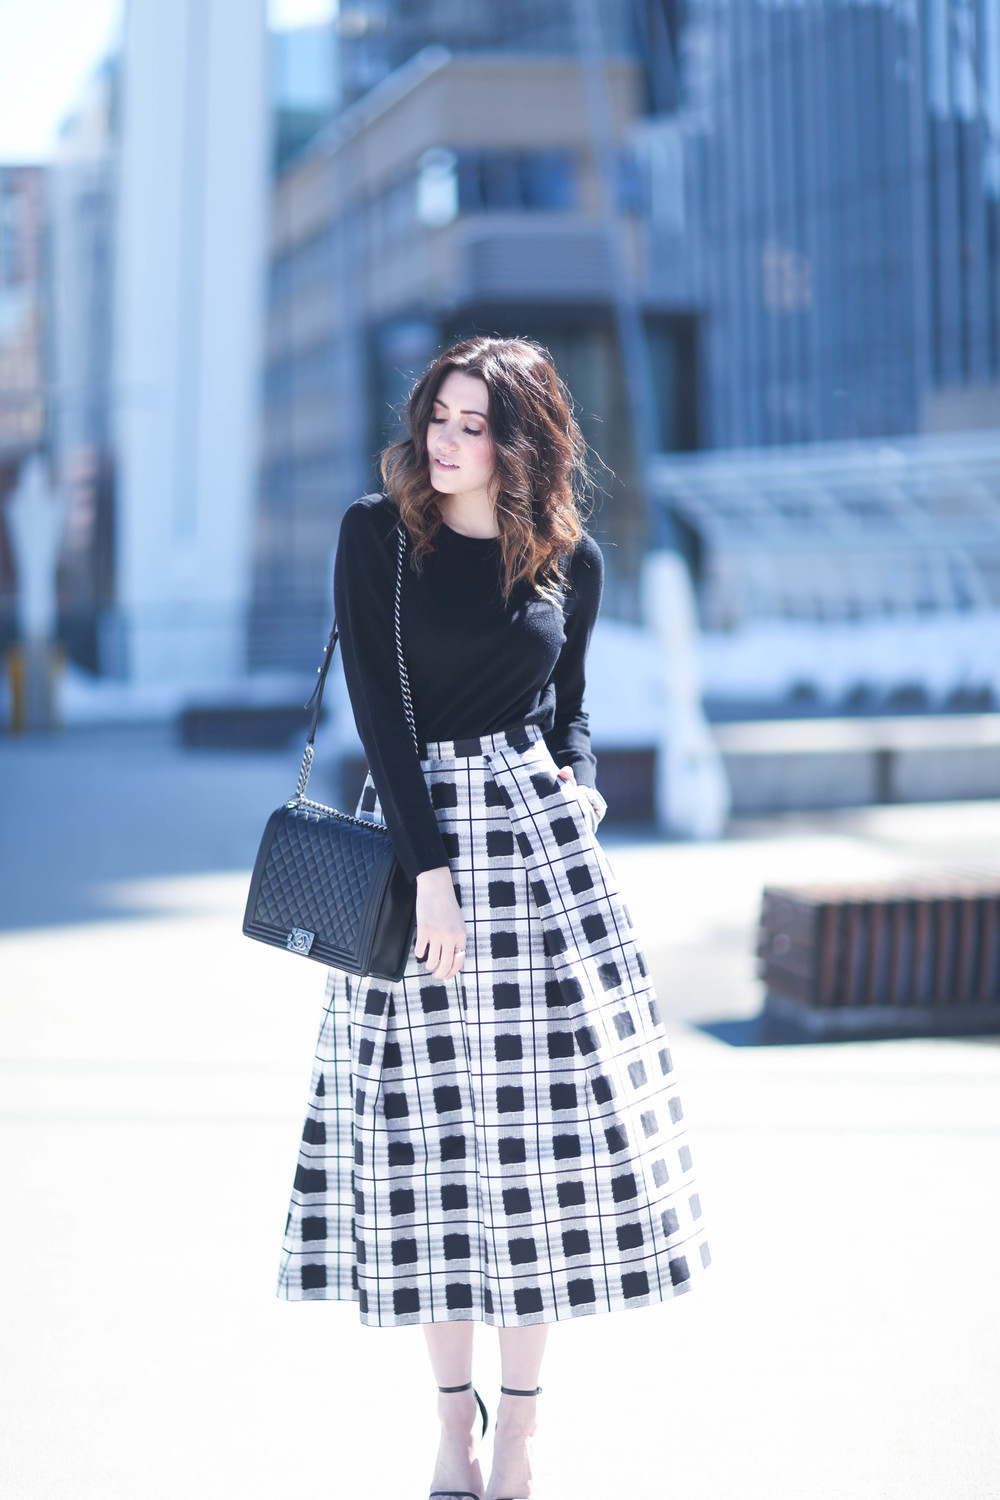 Black and White Outfit Ideas: Hailey Middleton is wearing a black long sleeved Rag & Bone sweater with a plaid mid length skirt